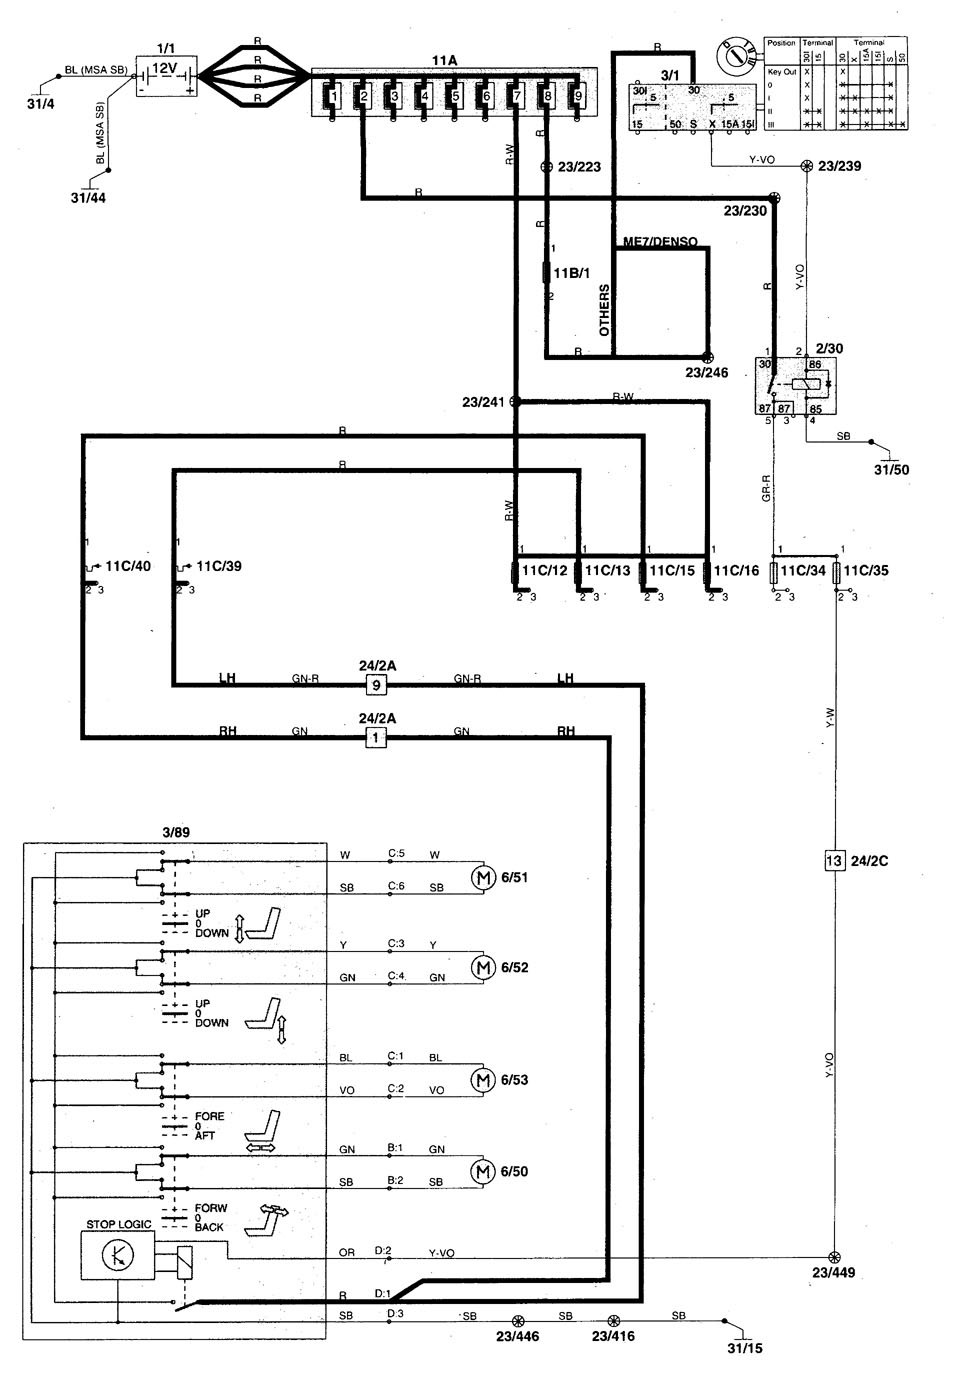 Wiring Diagram Volvo S70